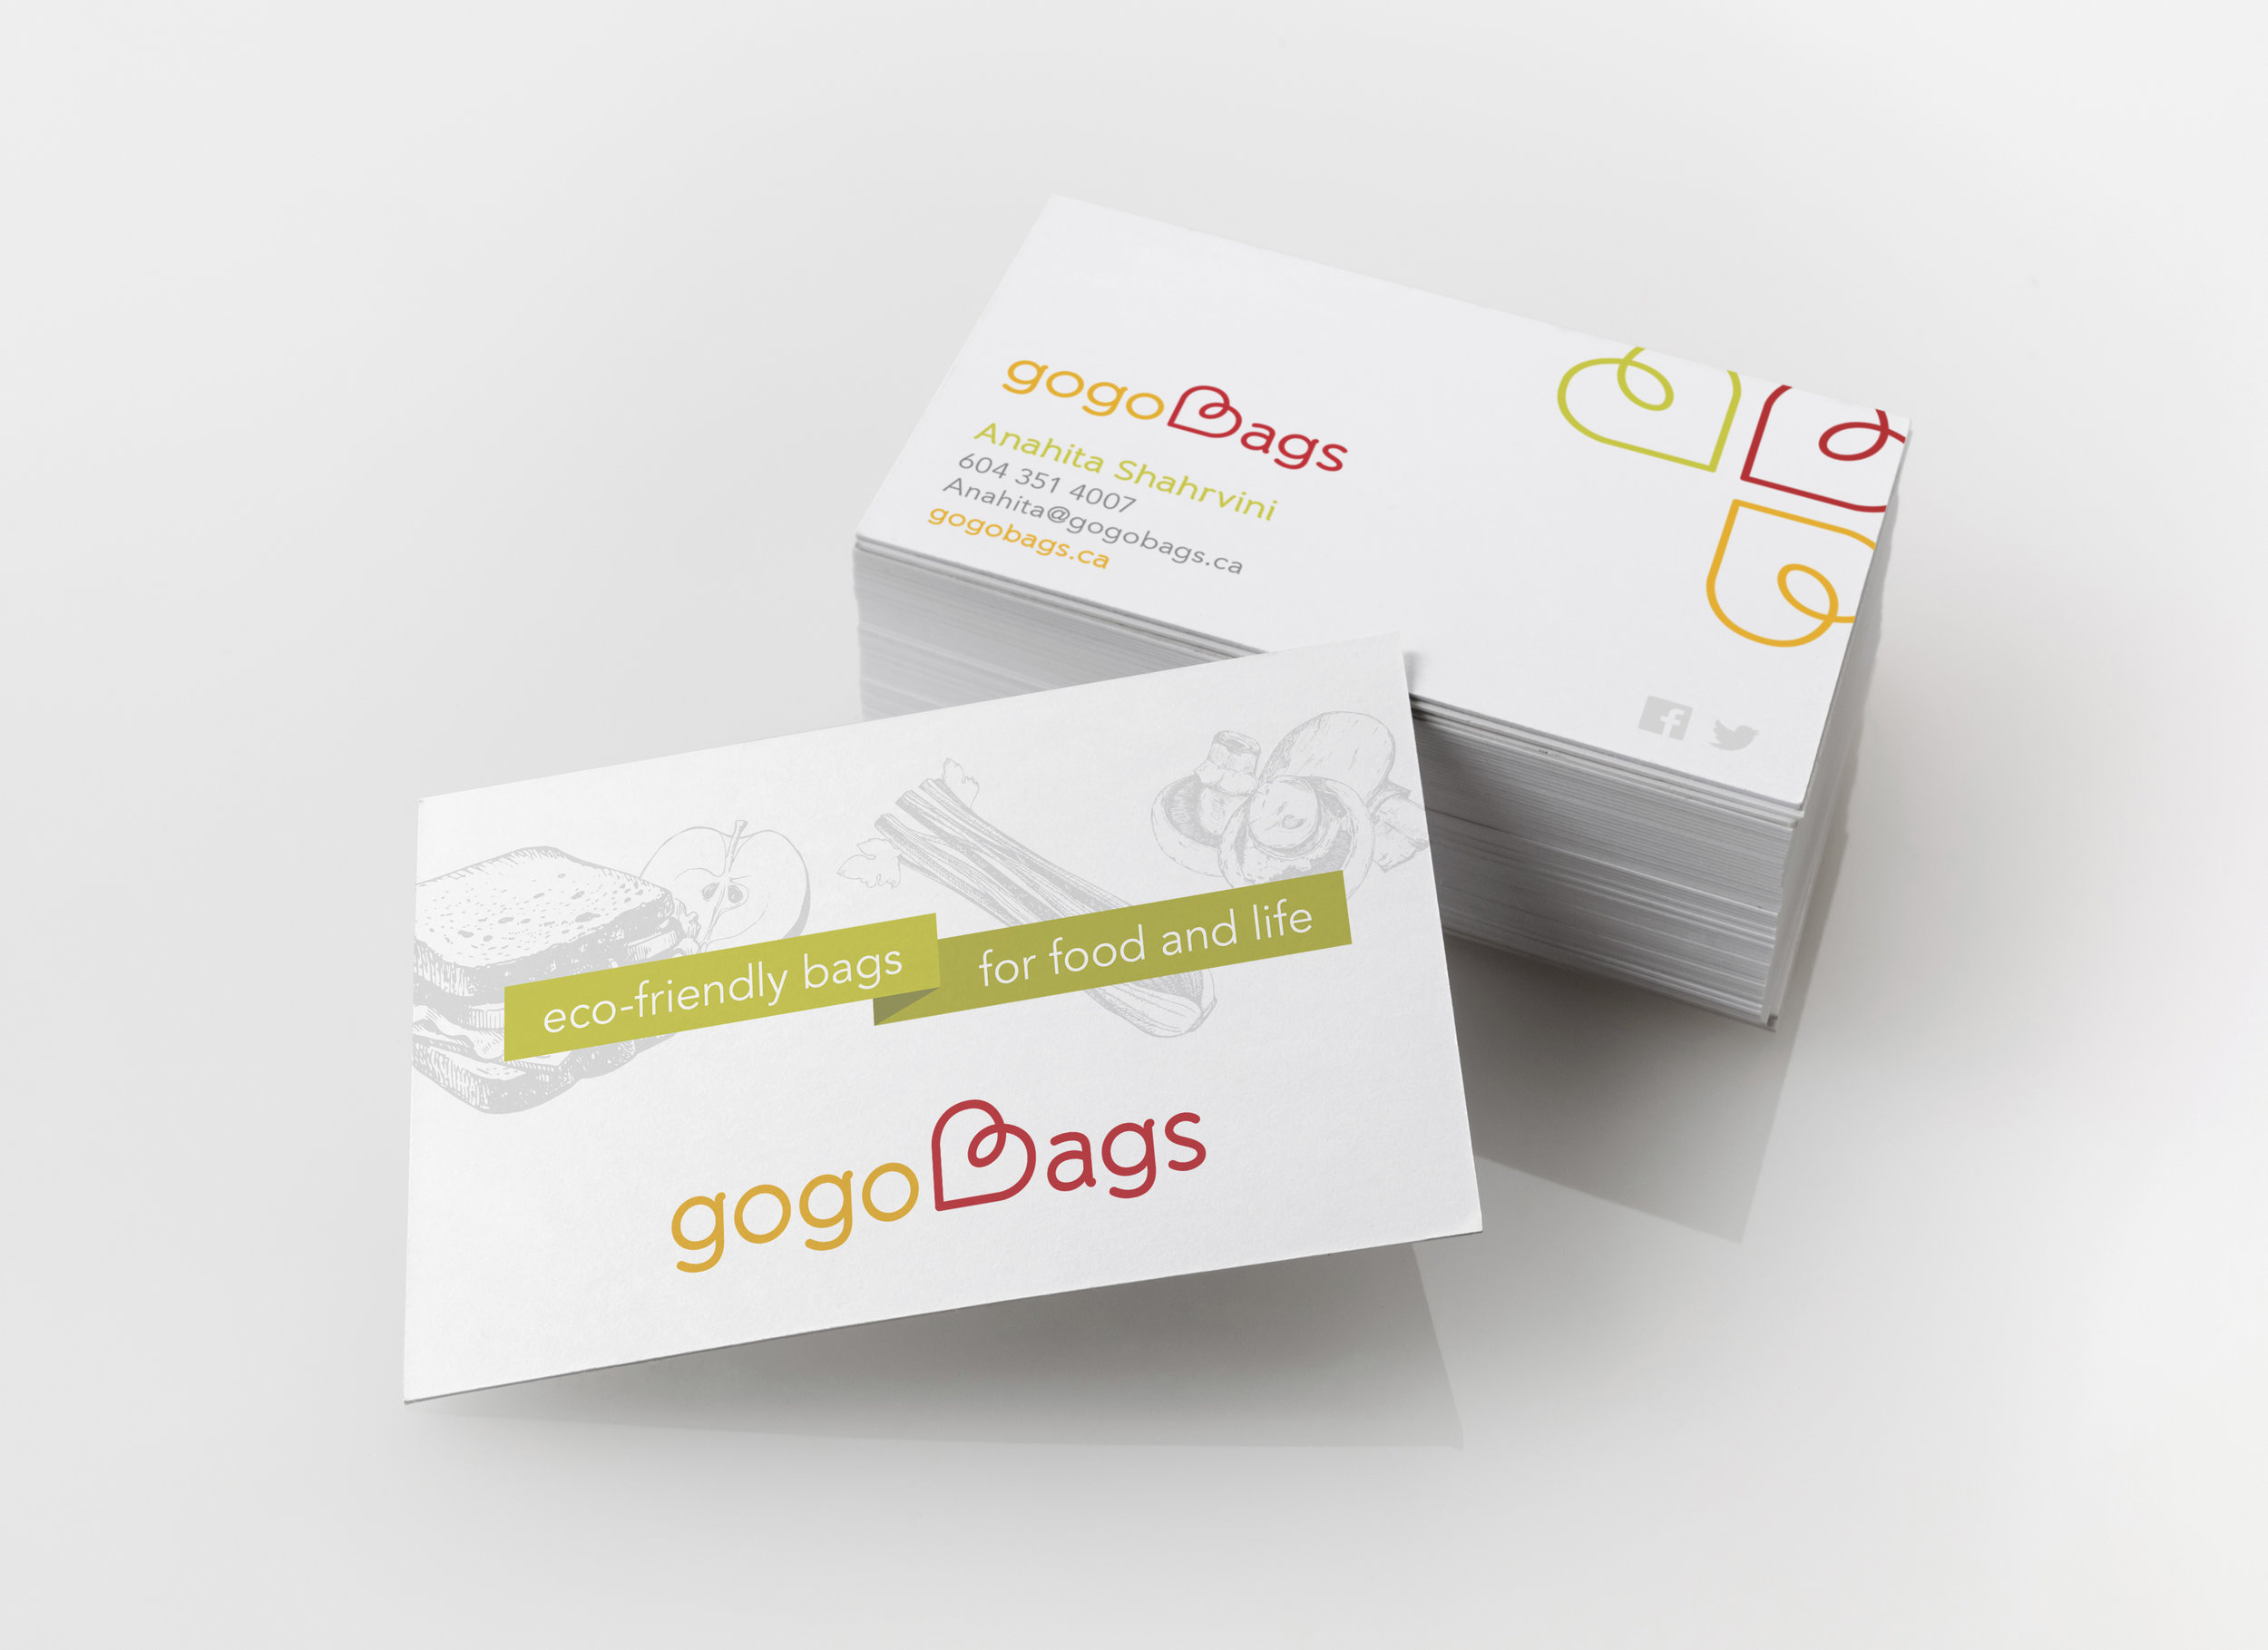 gogoBags business card design